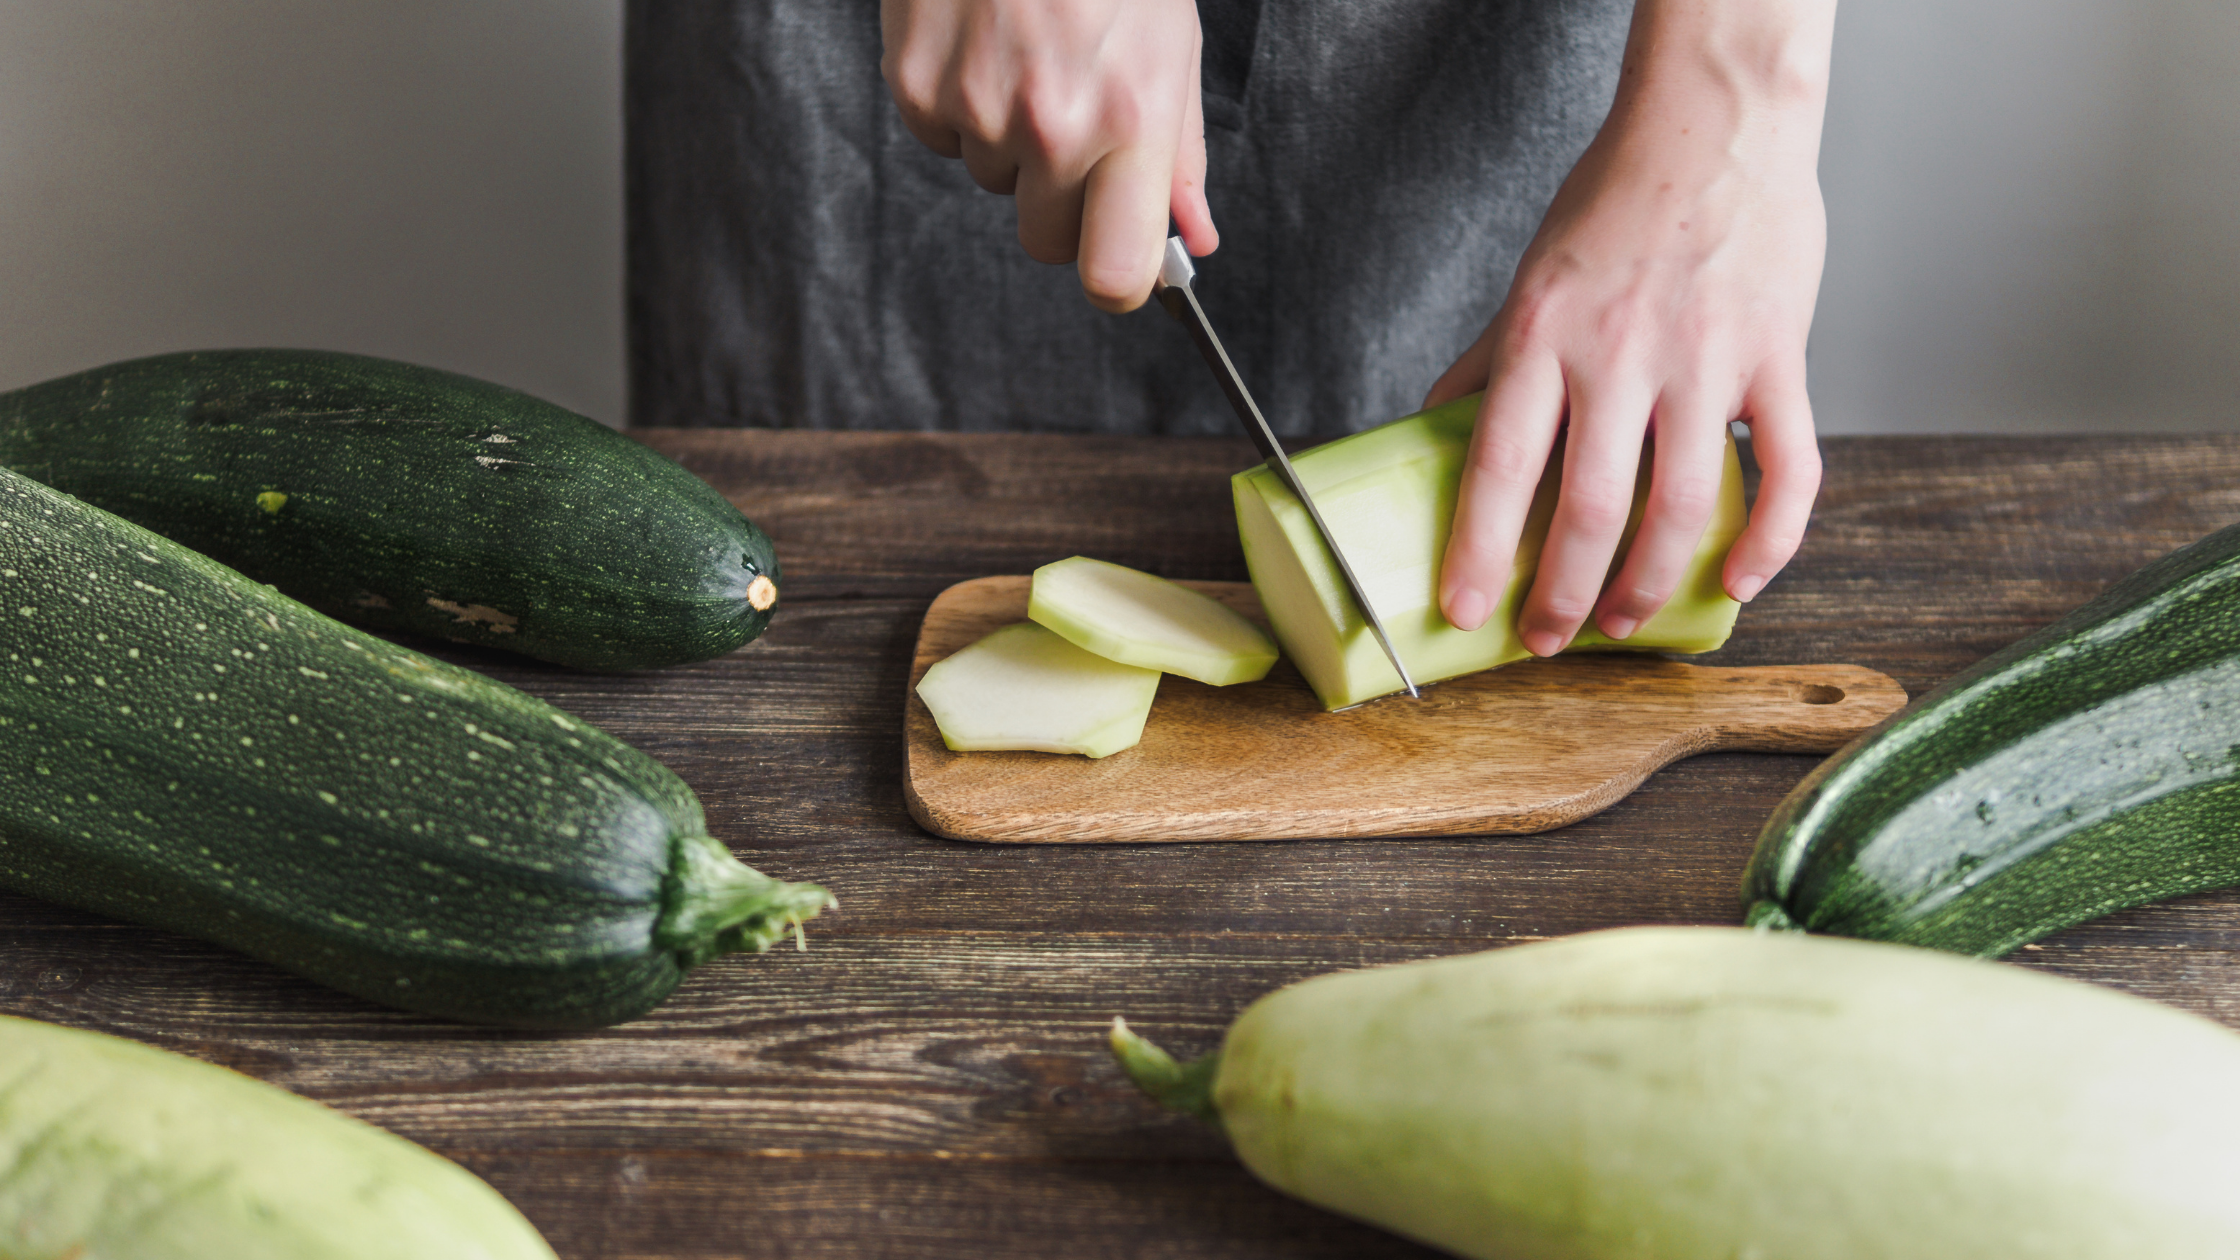 female slicing varieties of zucchini on a cutting board